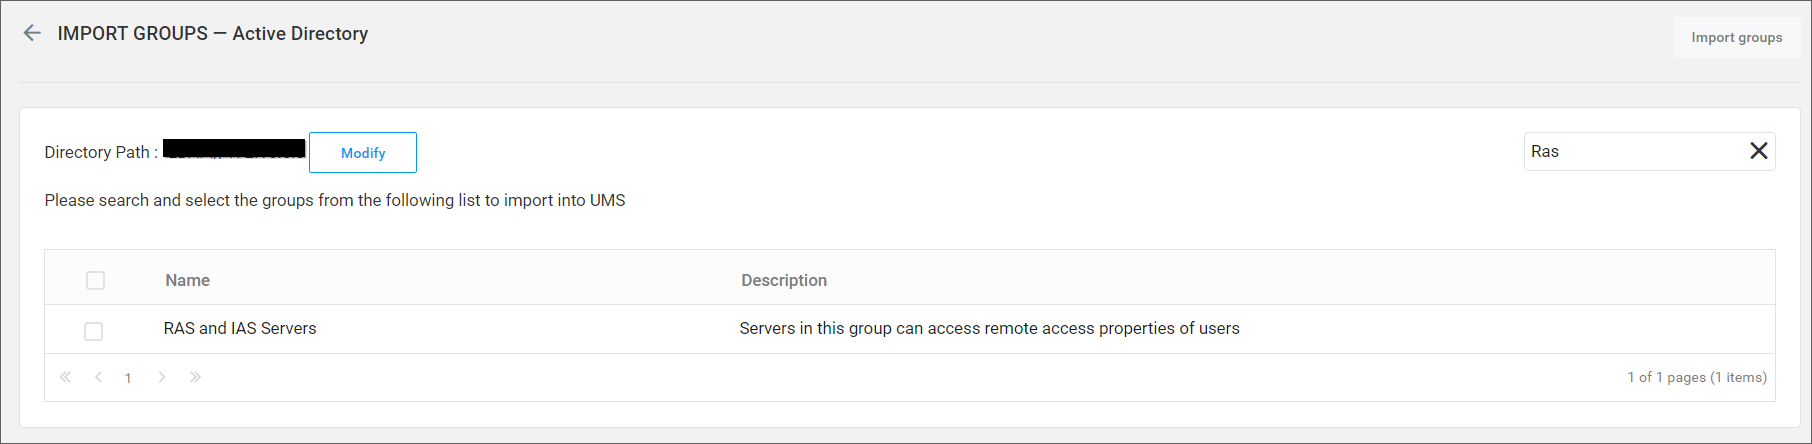 Synchronize Active Directory groups in the Syncfusion User